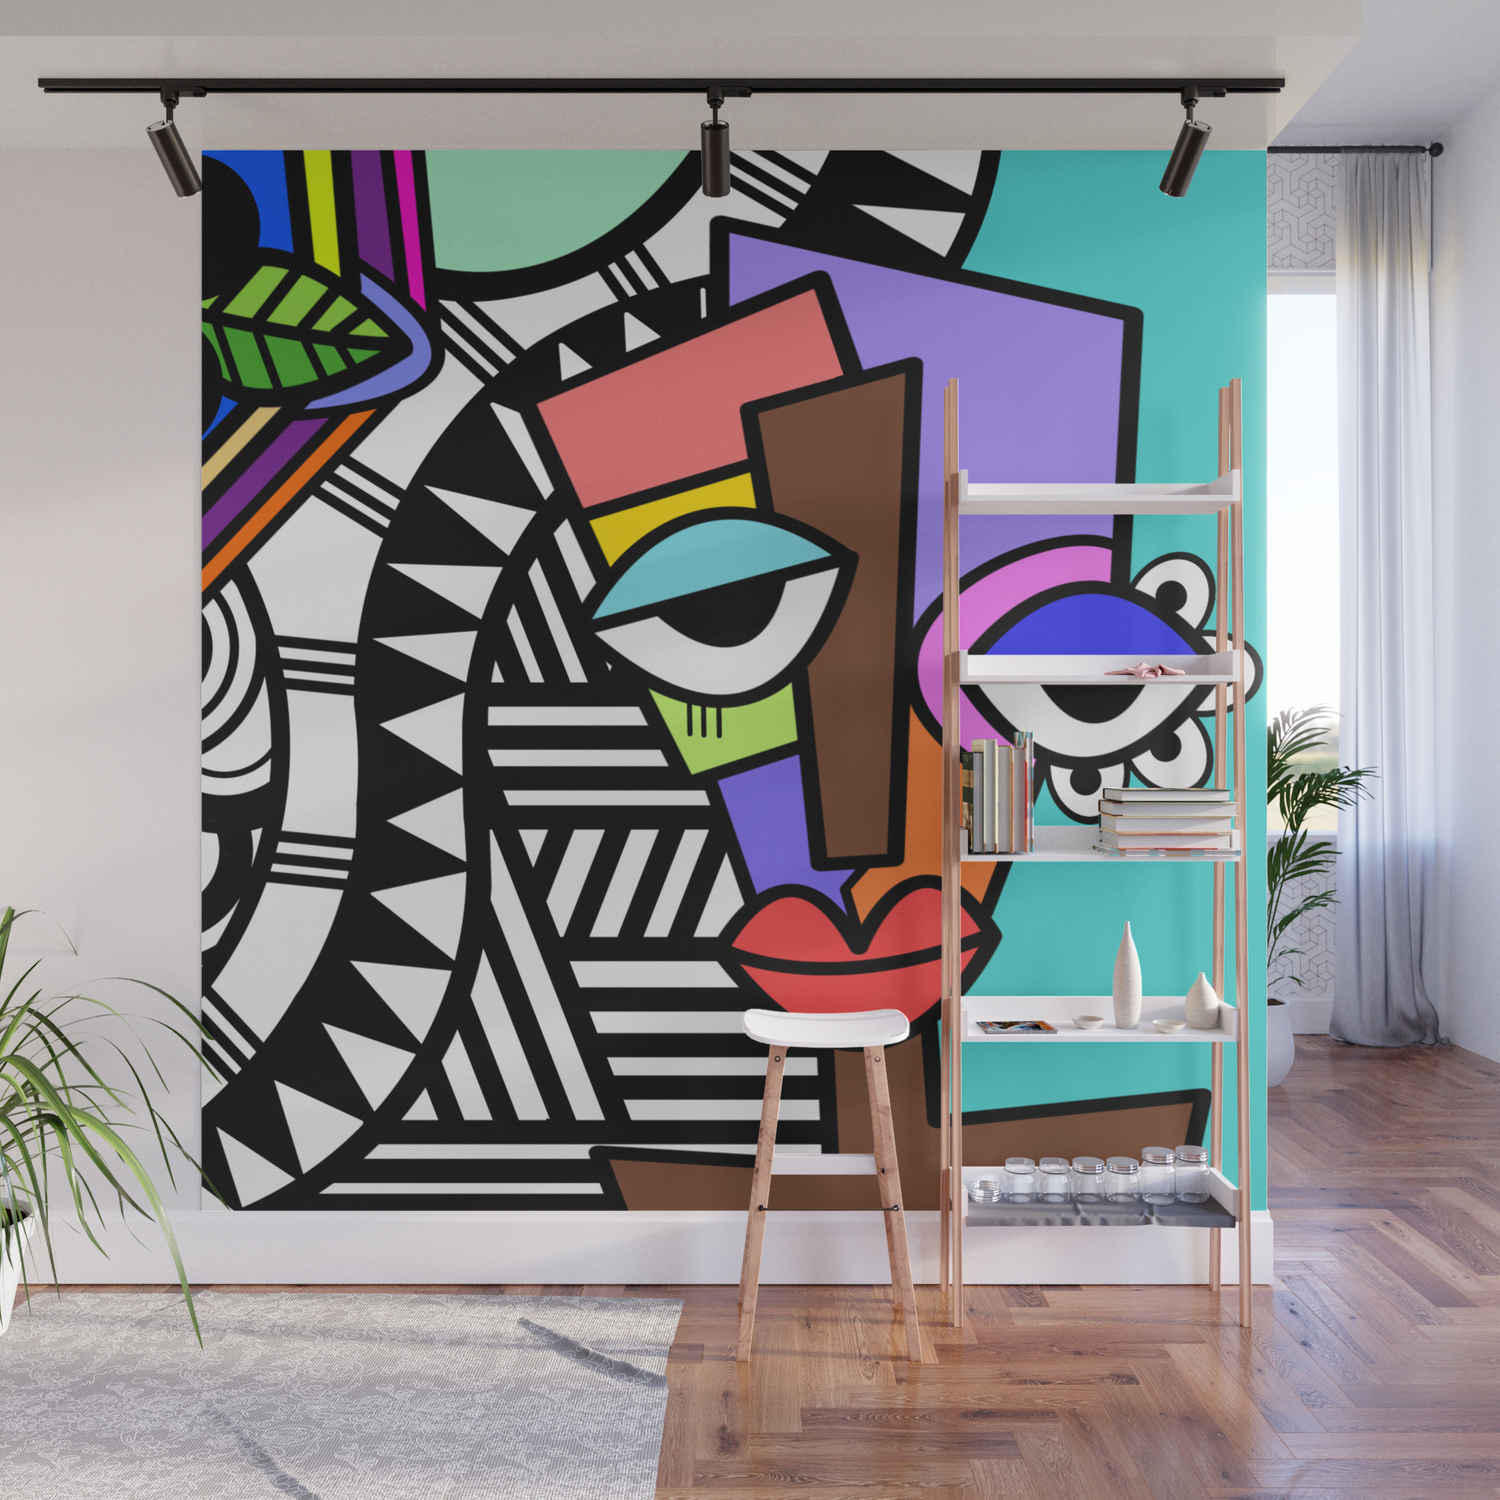 Artsy Cool Wall Murals